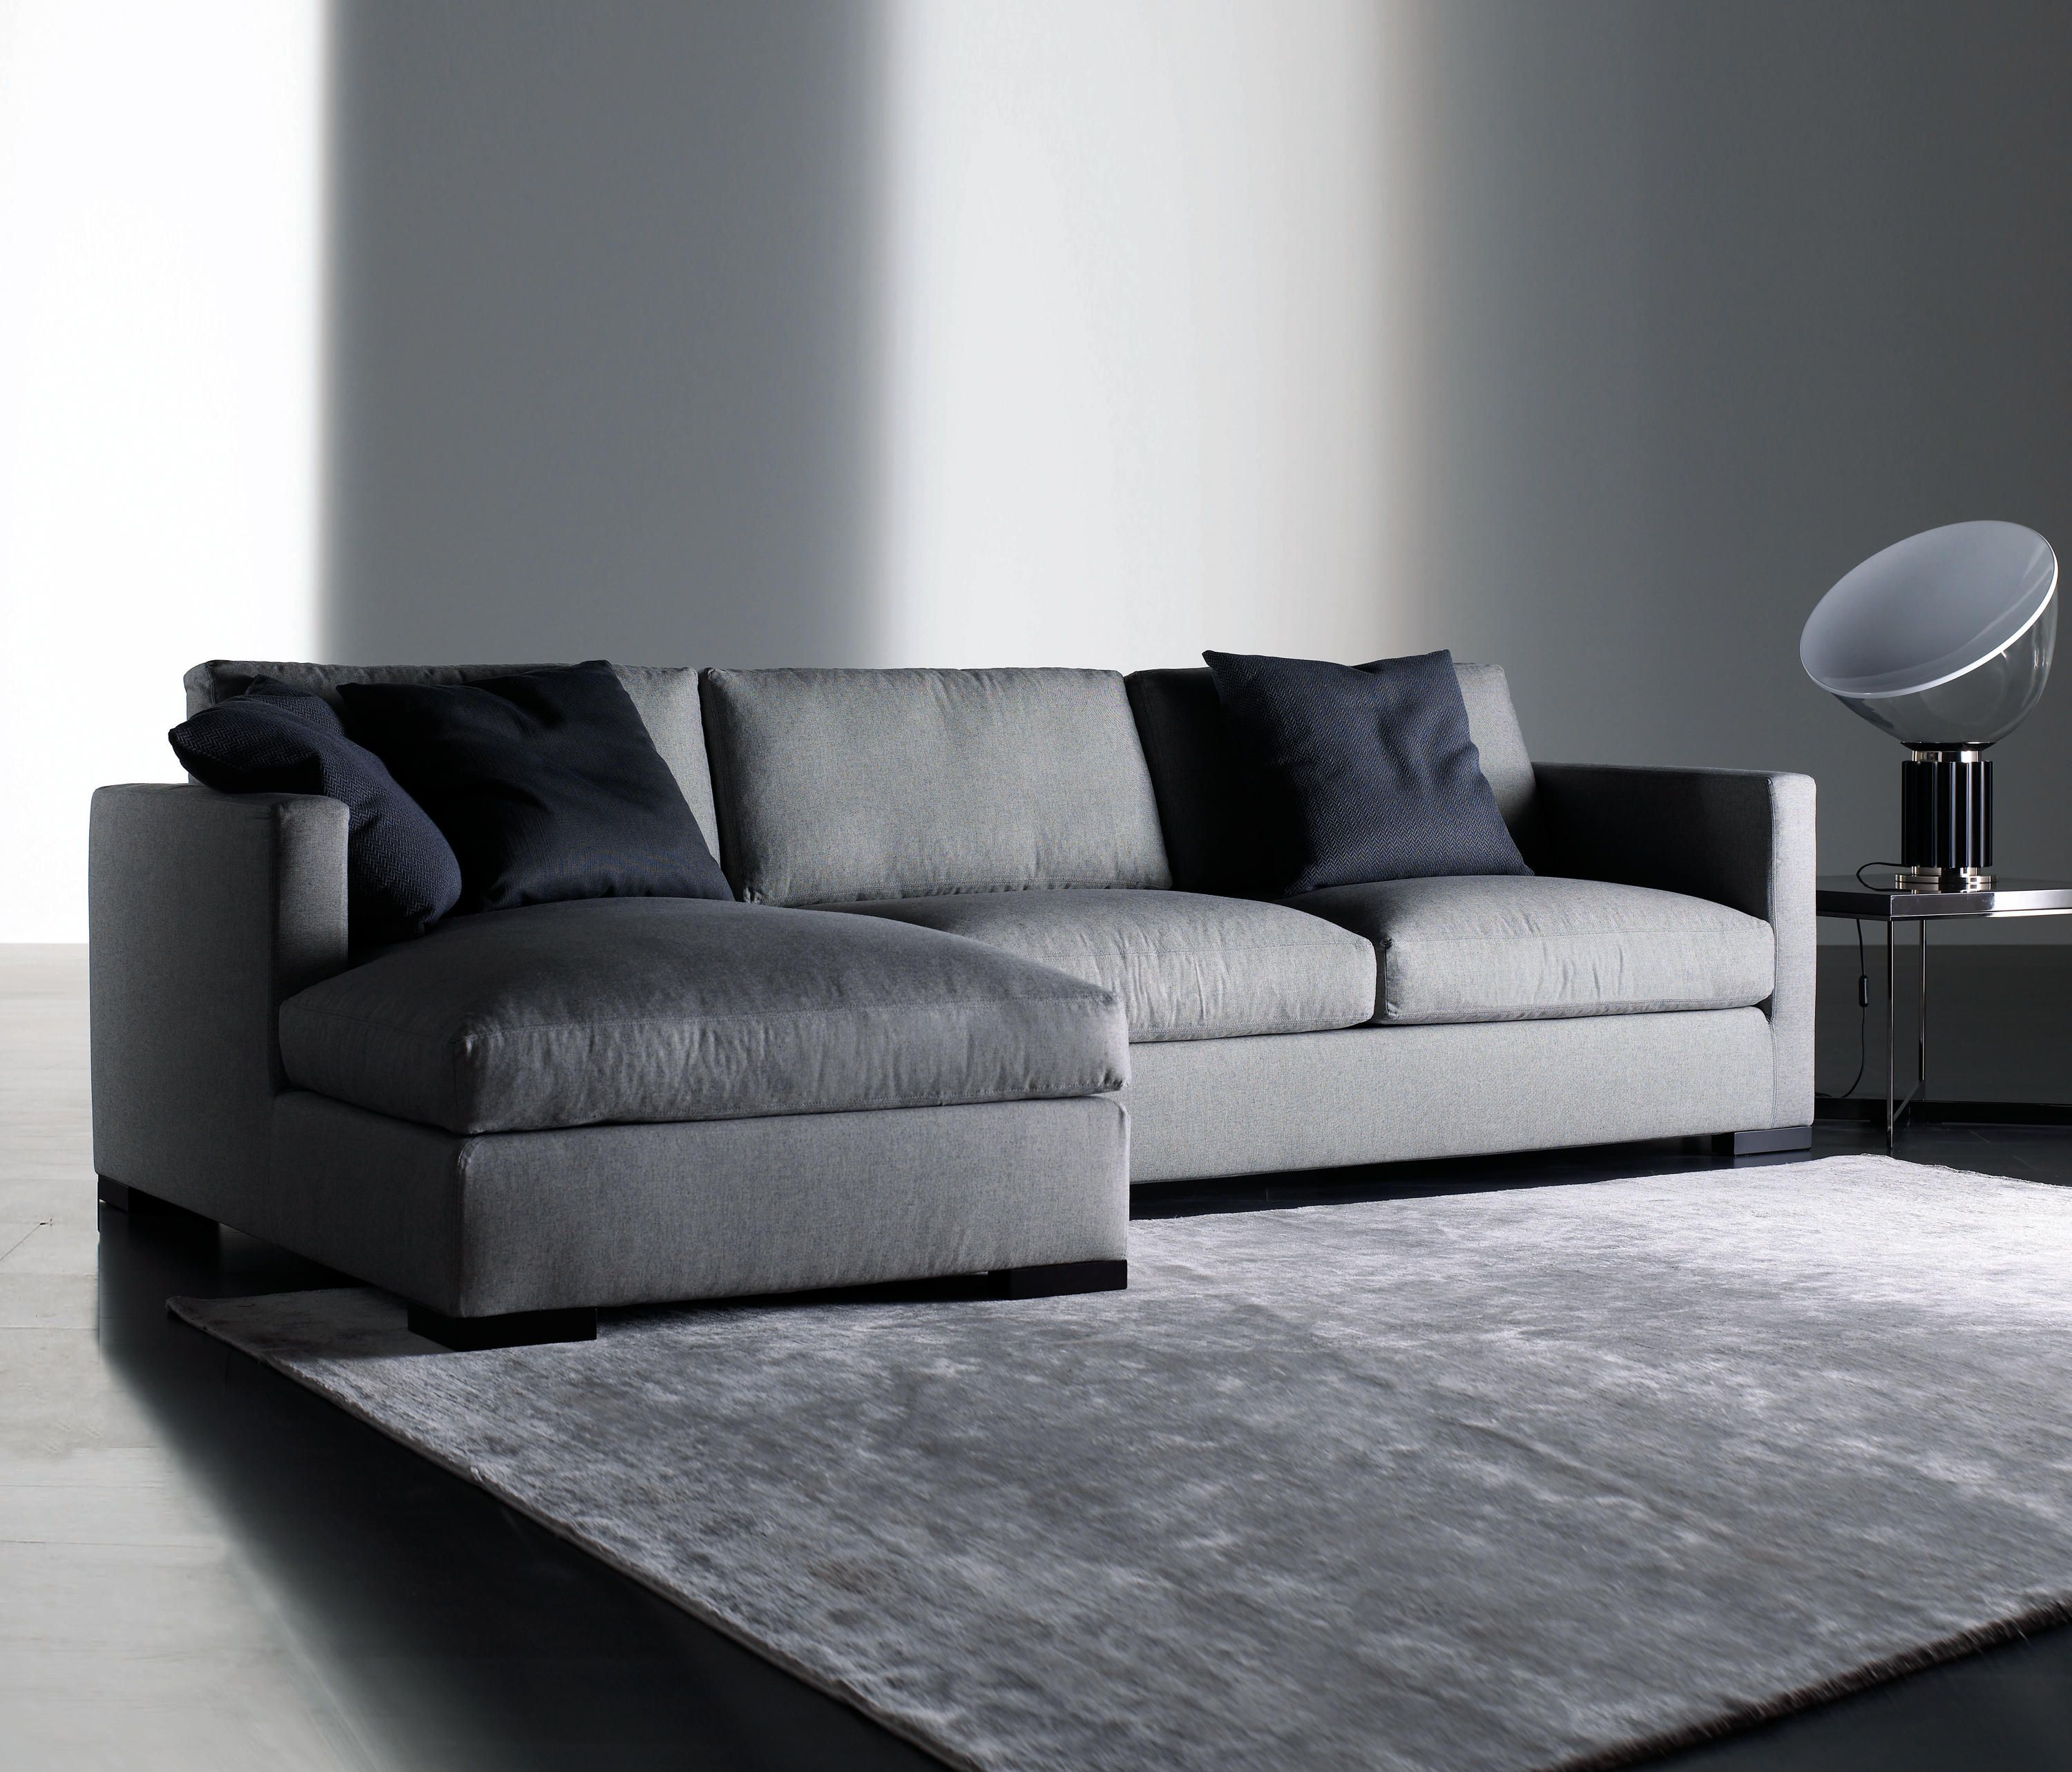 Belmon Modular Sofa Designer Sofas From Meridiani All Information High Resolution Images Cads Catalogues Contact Information